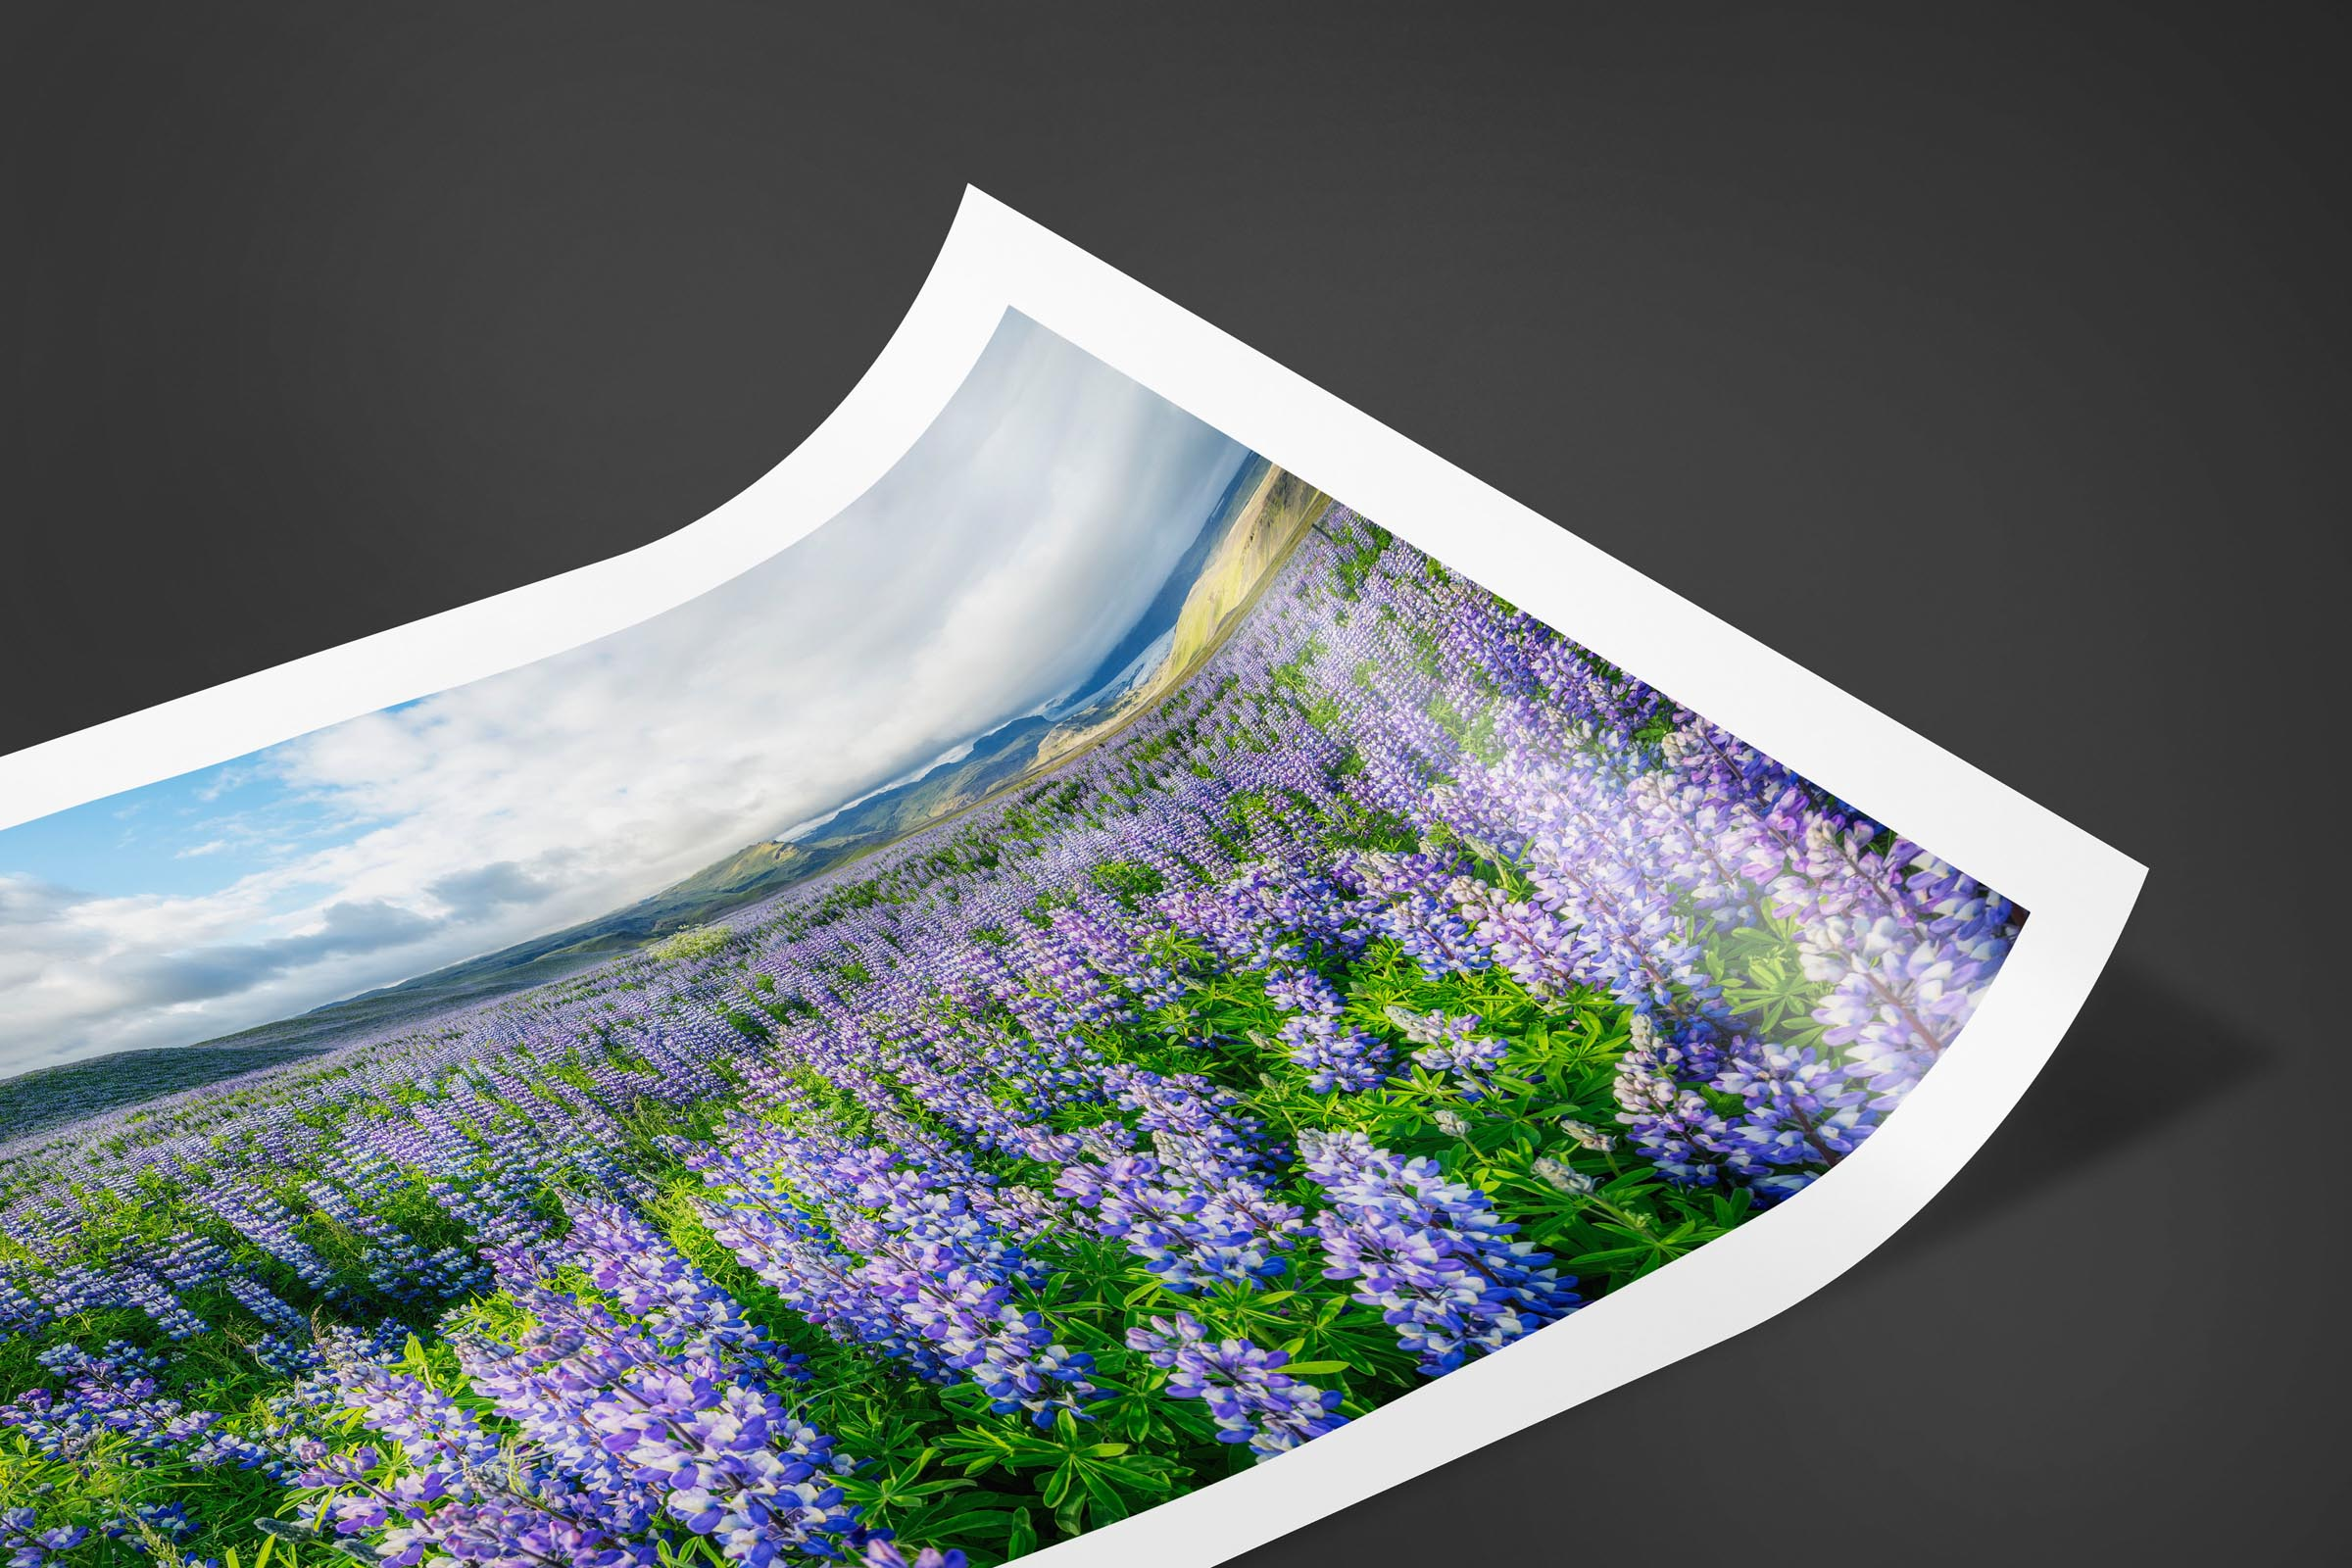 Fine art limited edition print of Lupine Field in Ring Road, Iceland by Brent Goldman Photography